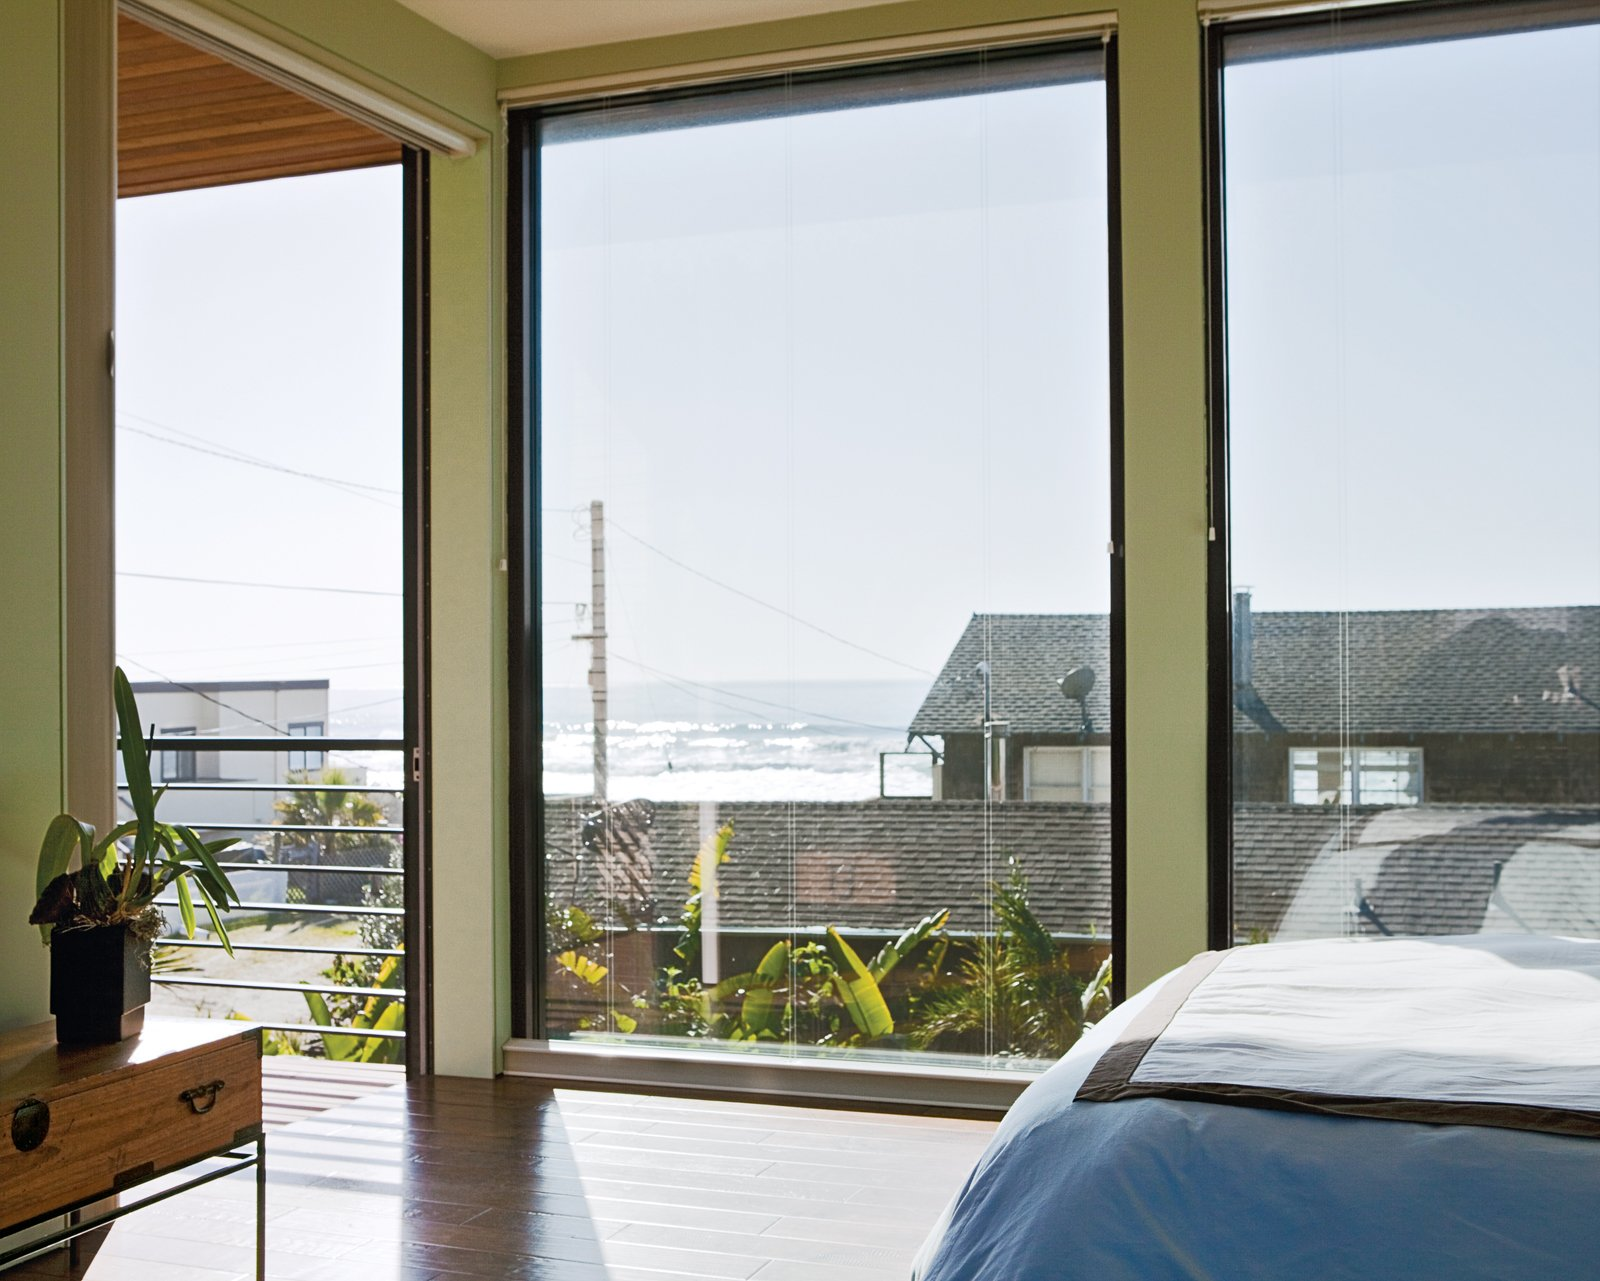 Floor-to-ceiling windows in the bedroom create the sensation of being outside, as if the entire house is one platform deck strategically shielded from the elements. A Modern Coastal Home in Stinson Beach - Photo 5 of 10